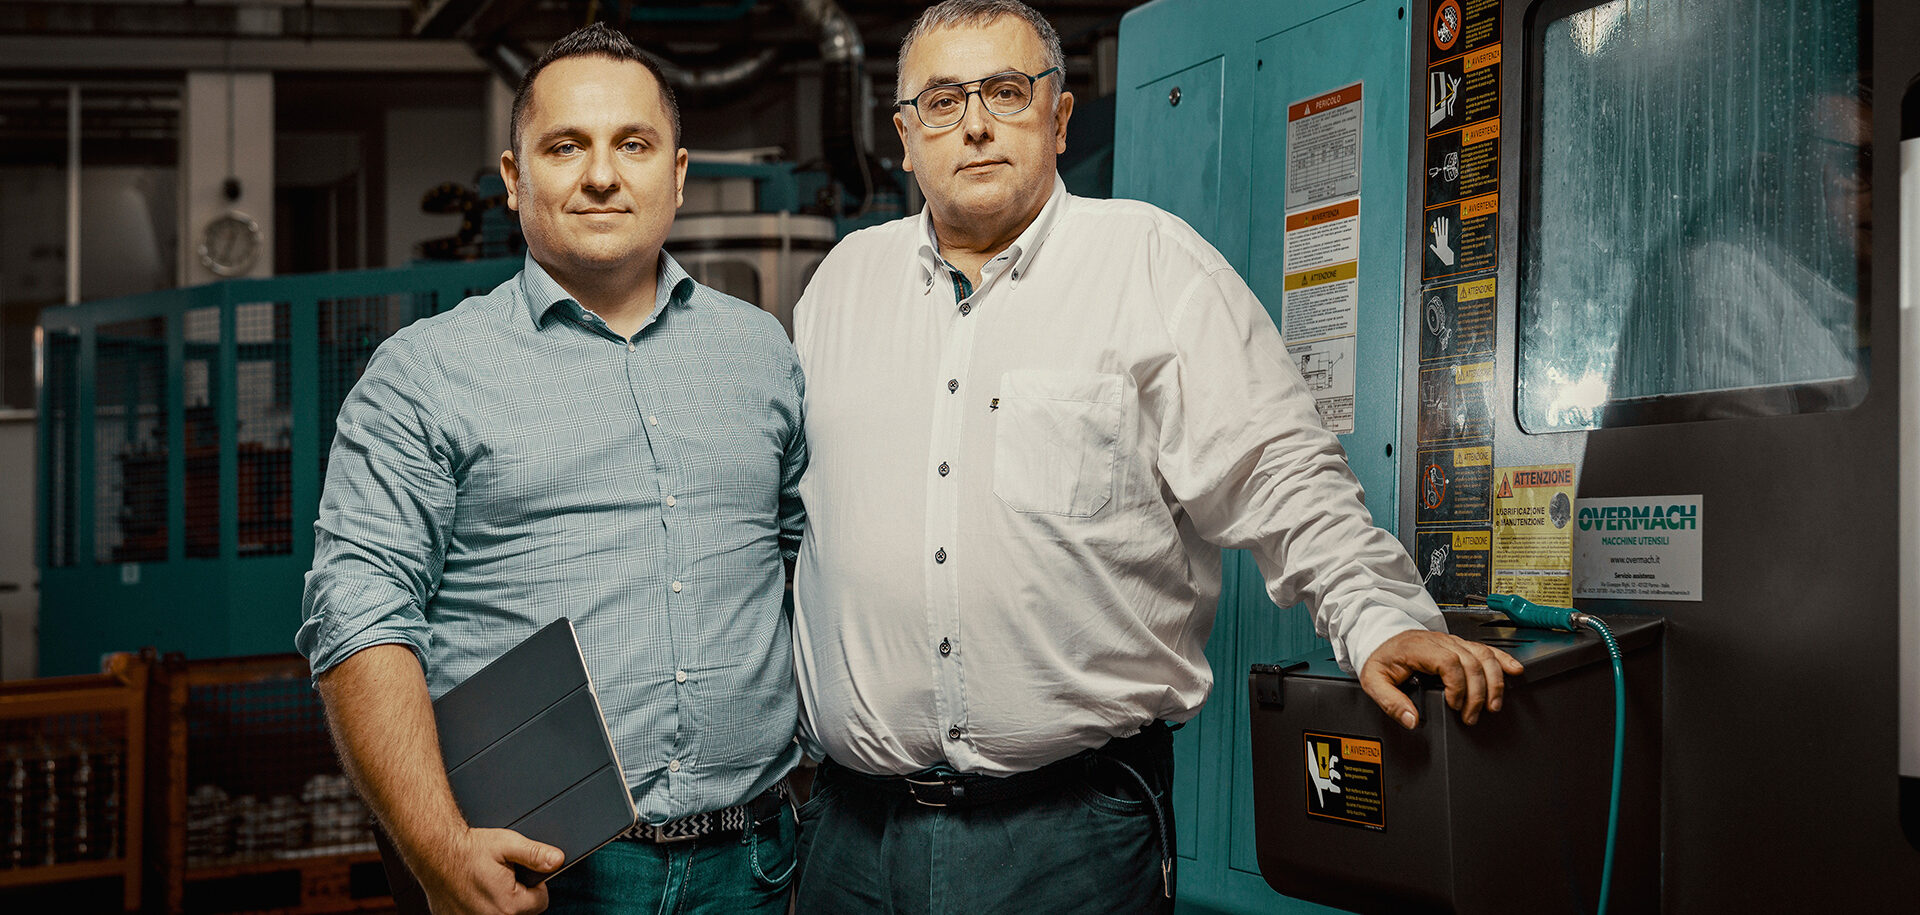 Alessandro Benevelli, commercial director, and Alberto Benevelli, CEO, Benevelli S.r.l.